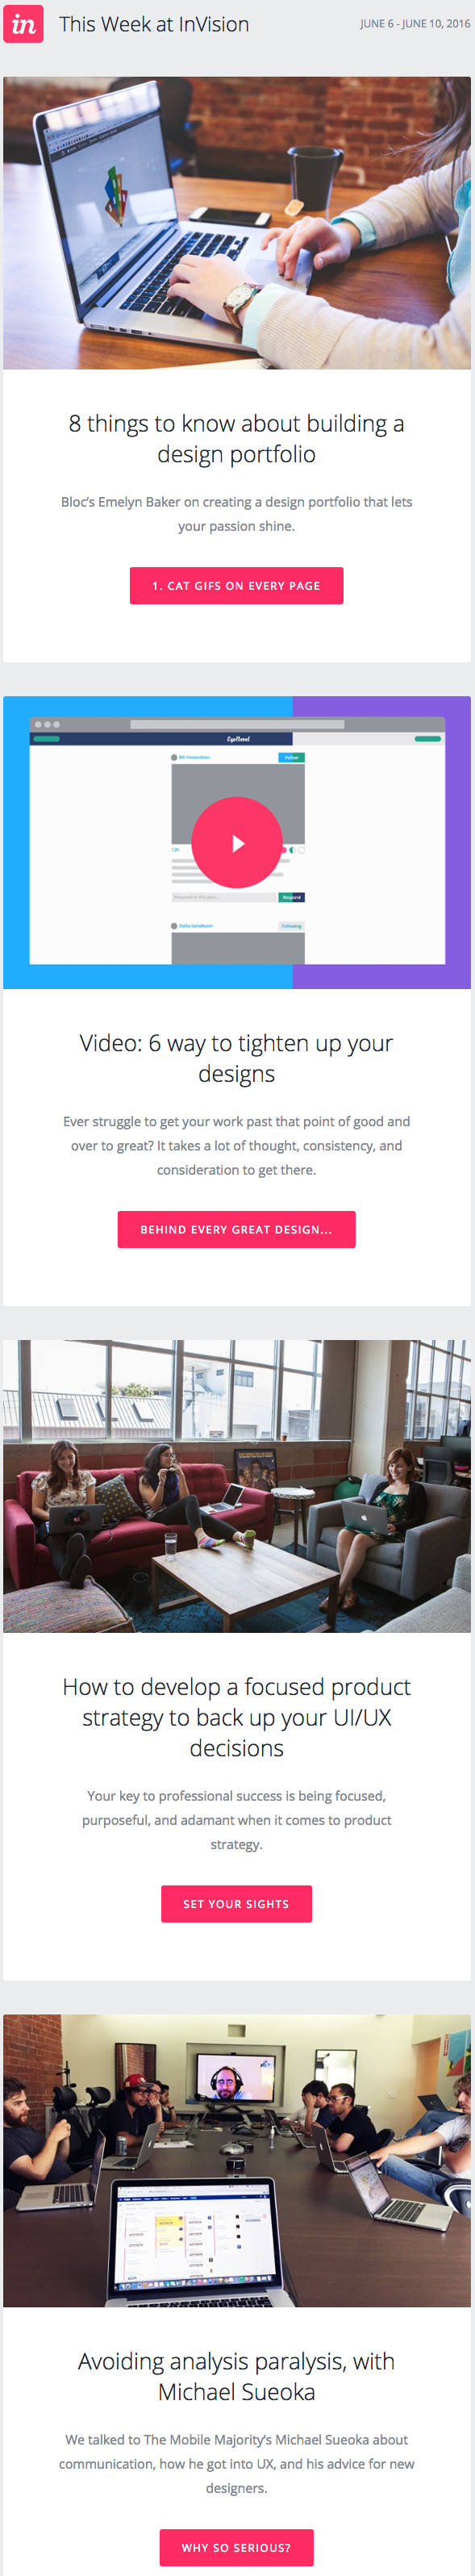 15 Email Newsletter Examples We Love Getting in Our Inboxes – Example of a News Letter